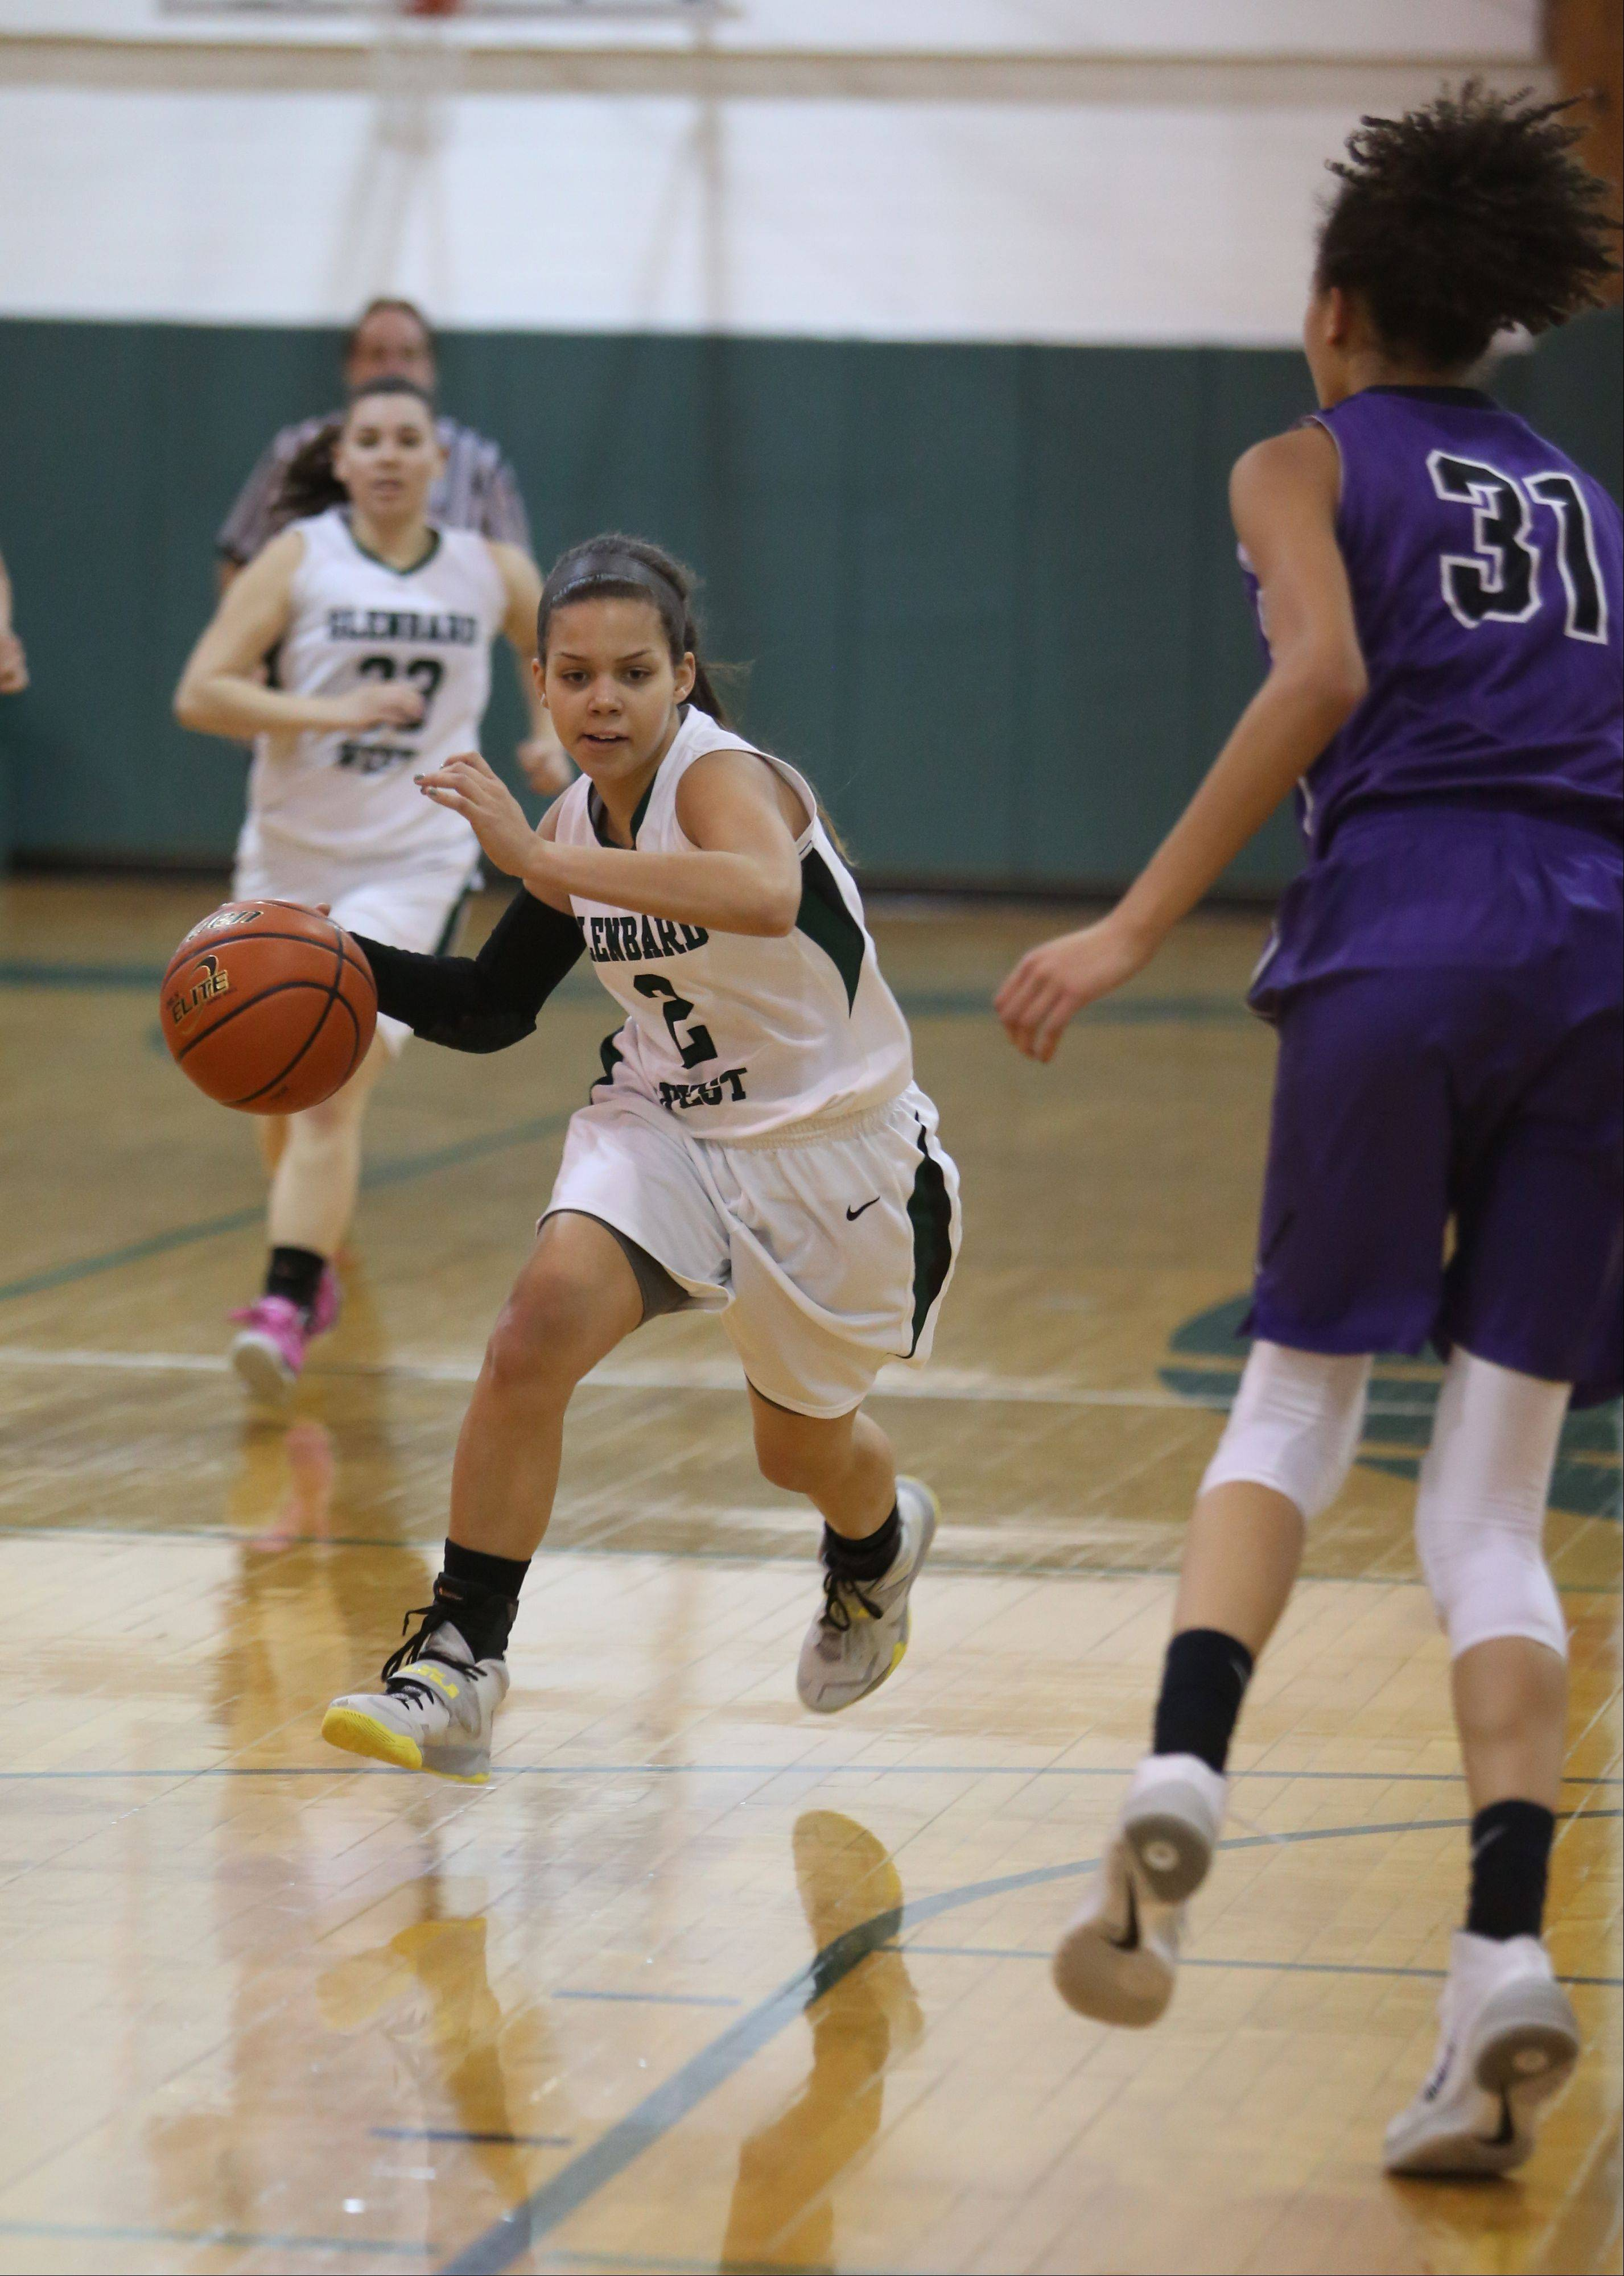 Photos from the Downers Grove North at Glenbard West girls basketball game Tuesday, Feb. 4.